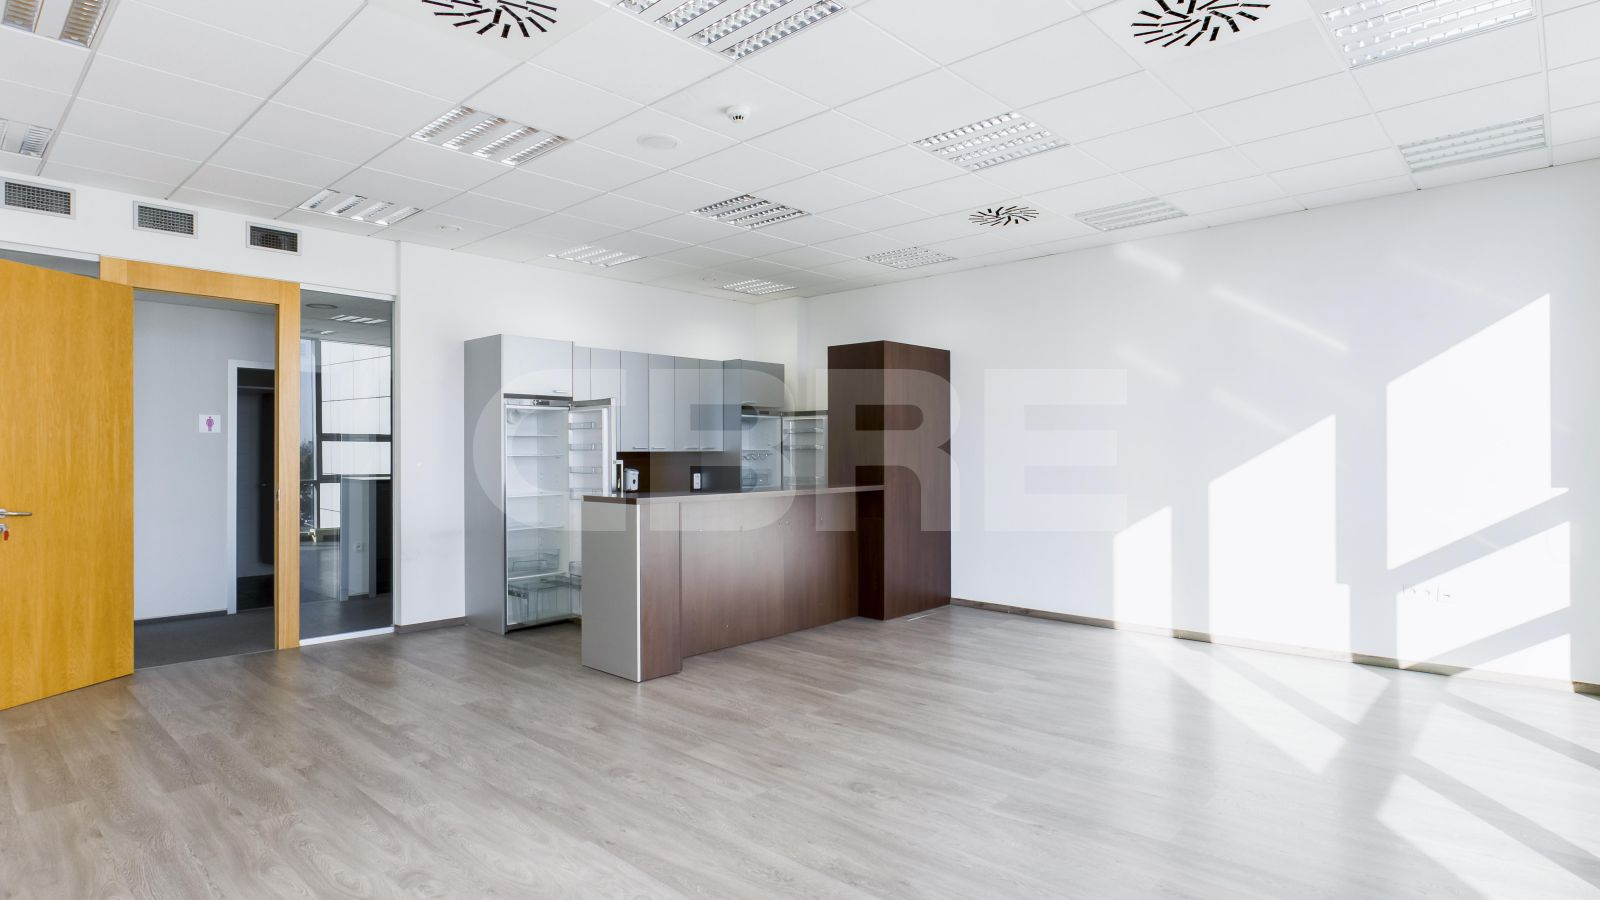 Forum BC, Bratislava - Ružinov | Offices for rent by CBRE | 7